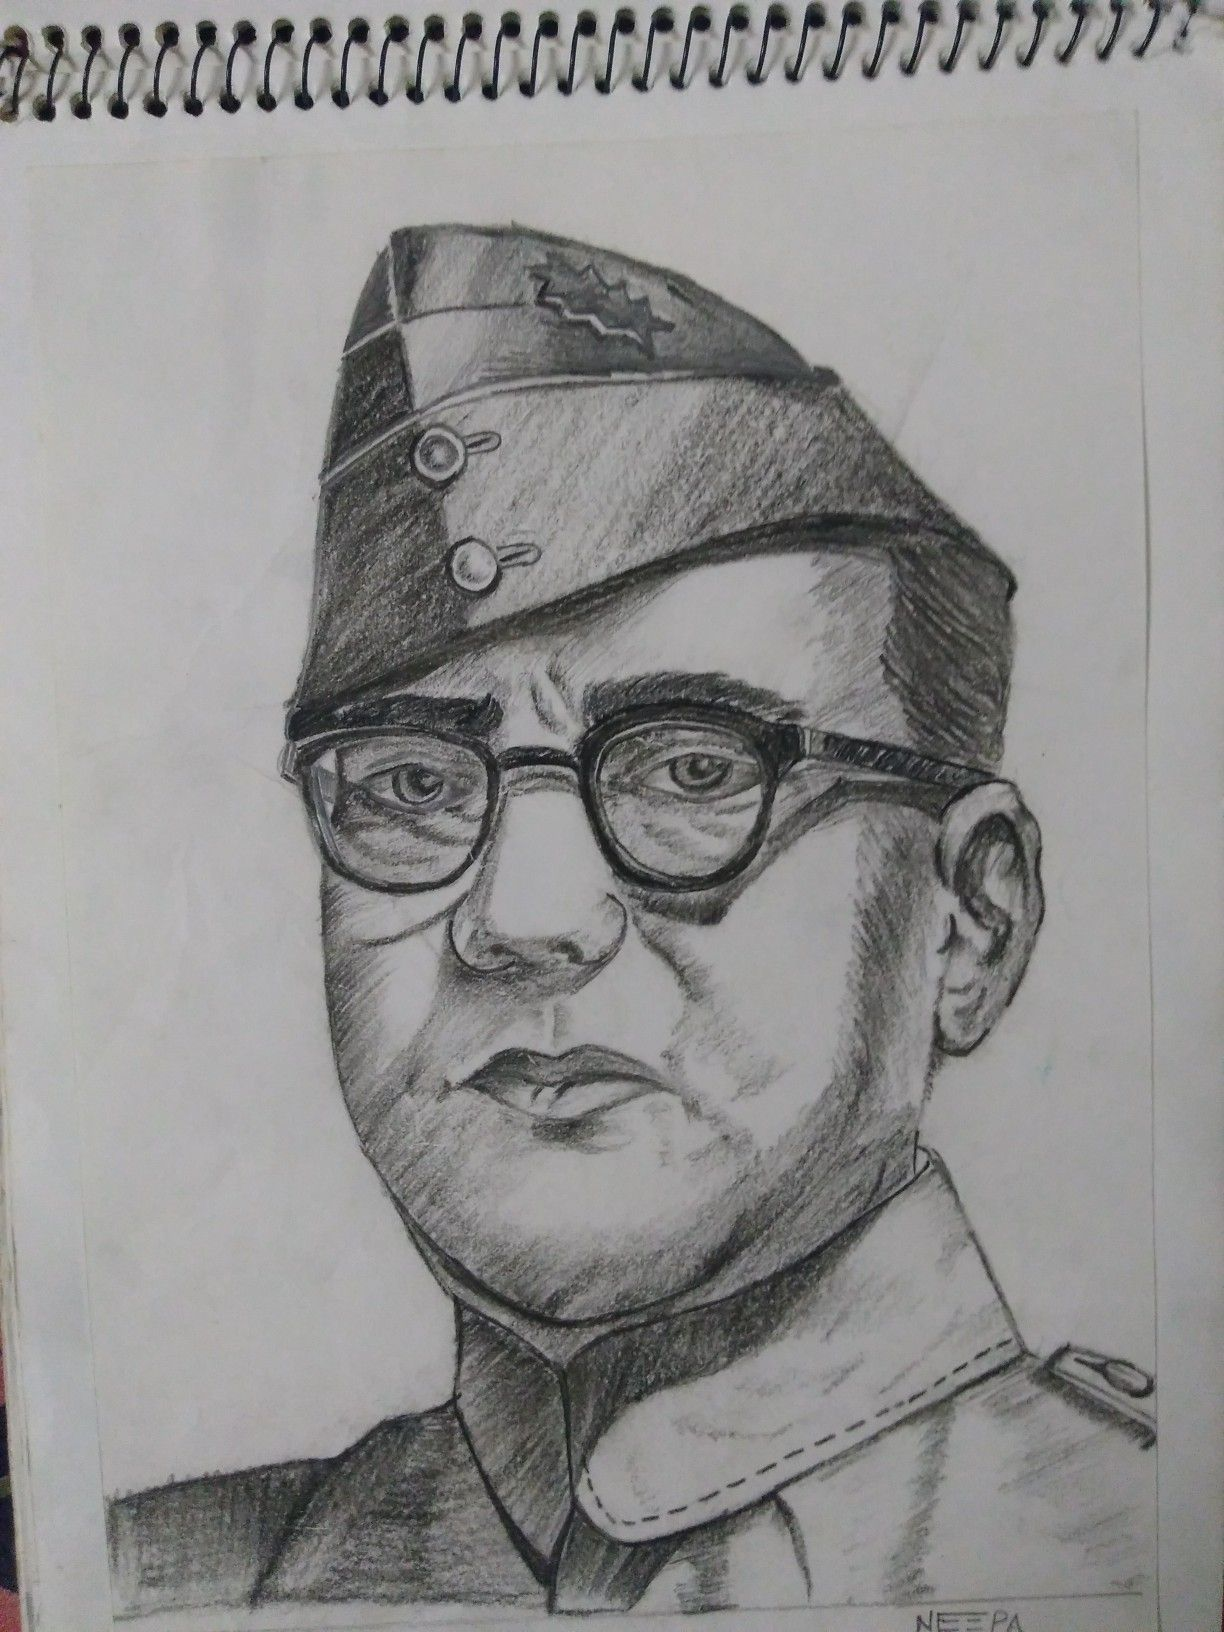 Subhash chandra bose pencil sketch my creation painting n pencil